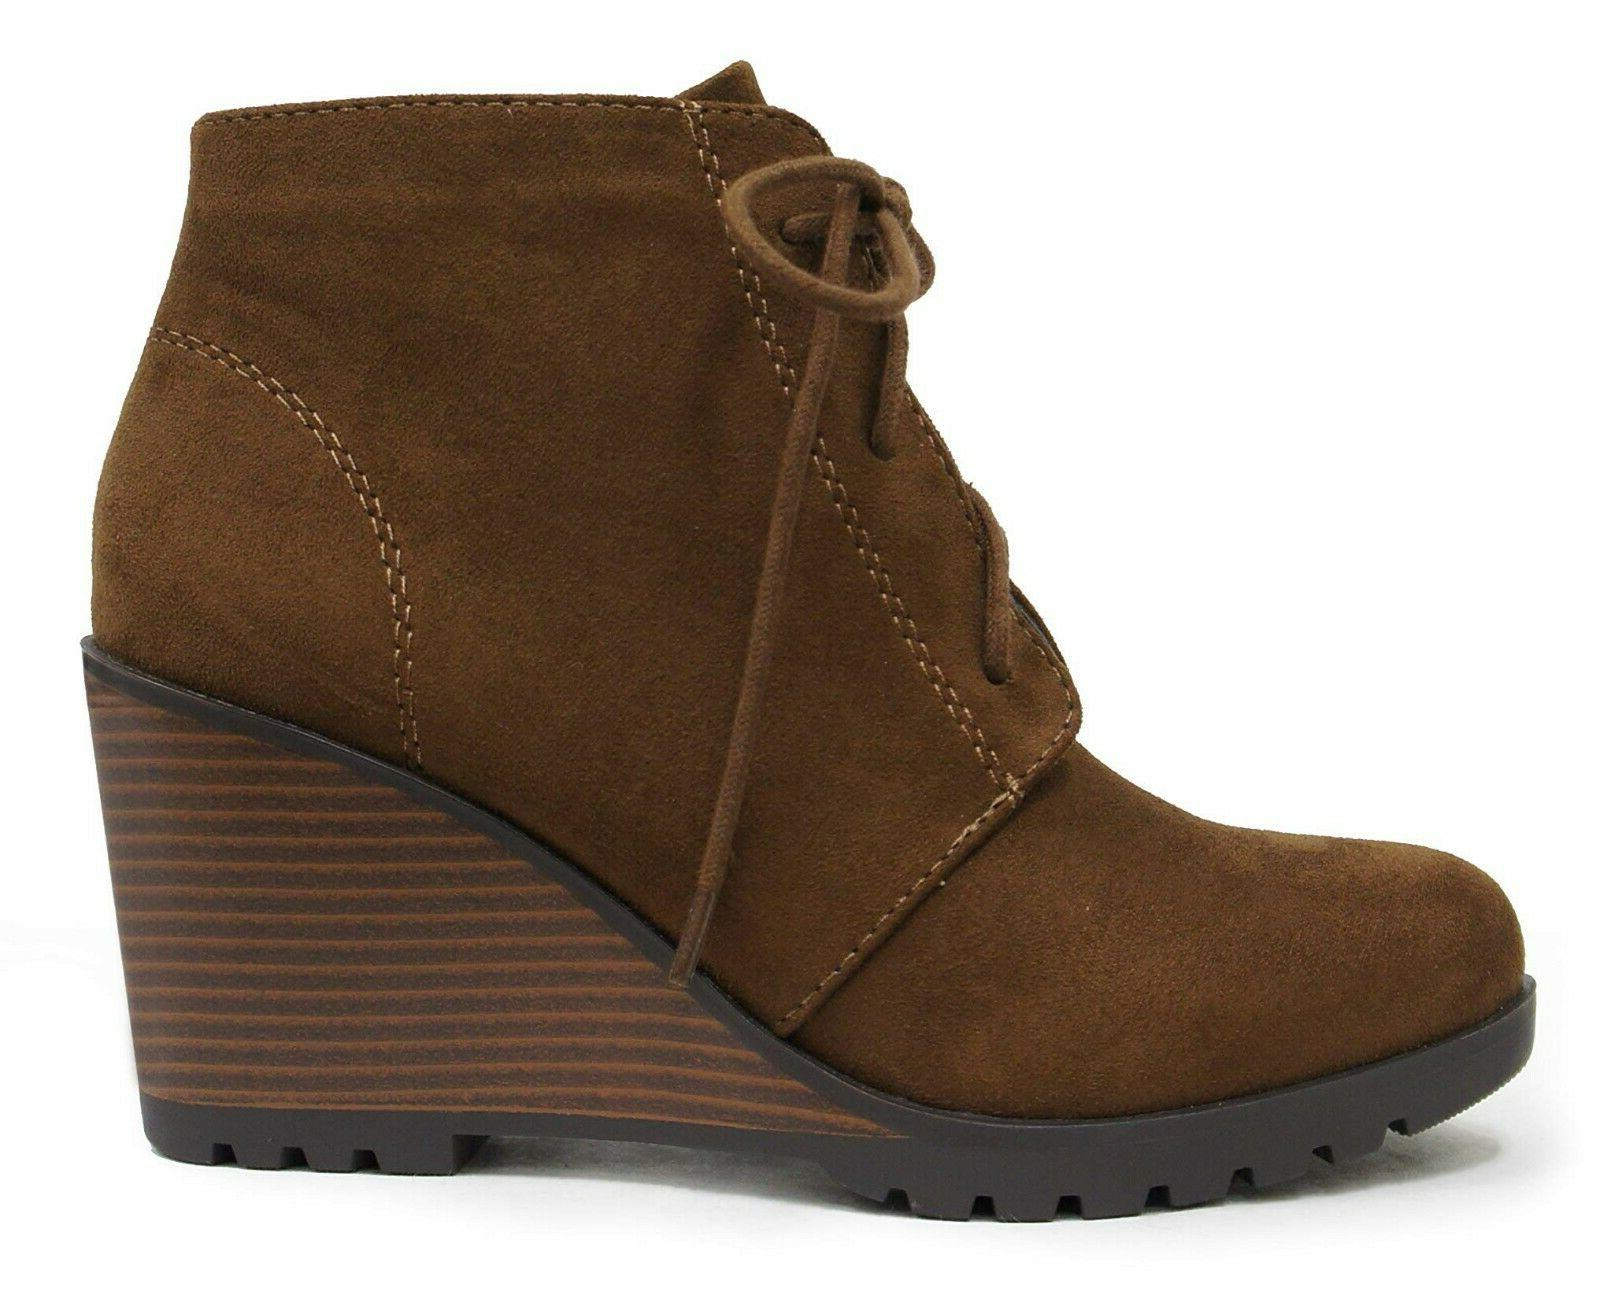 Soda Ankle Lace Combat Booties Wedge Heel Brown Faux Suede